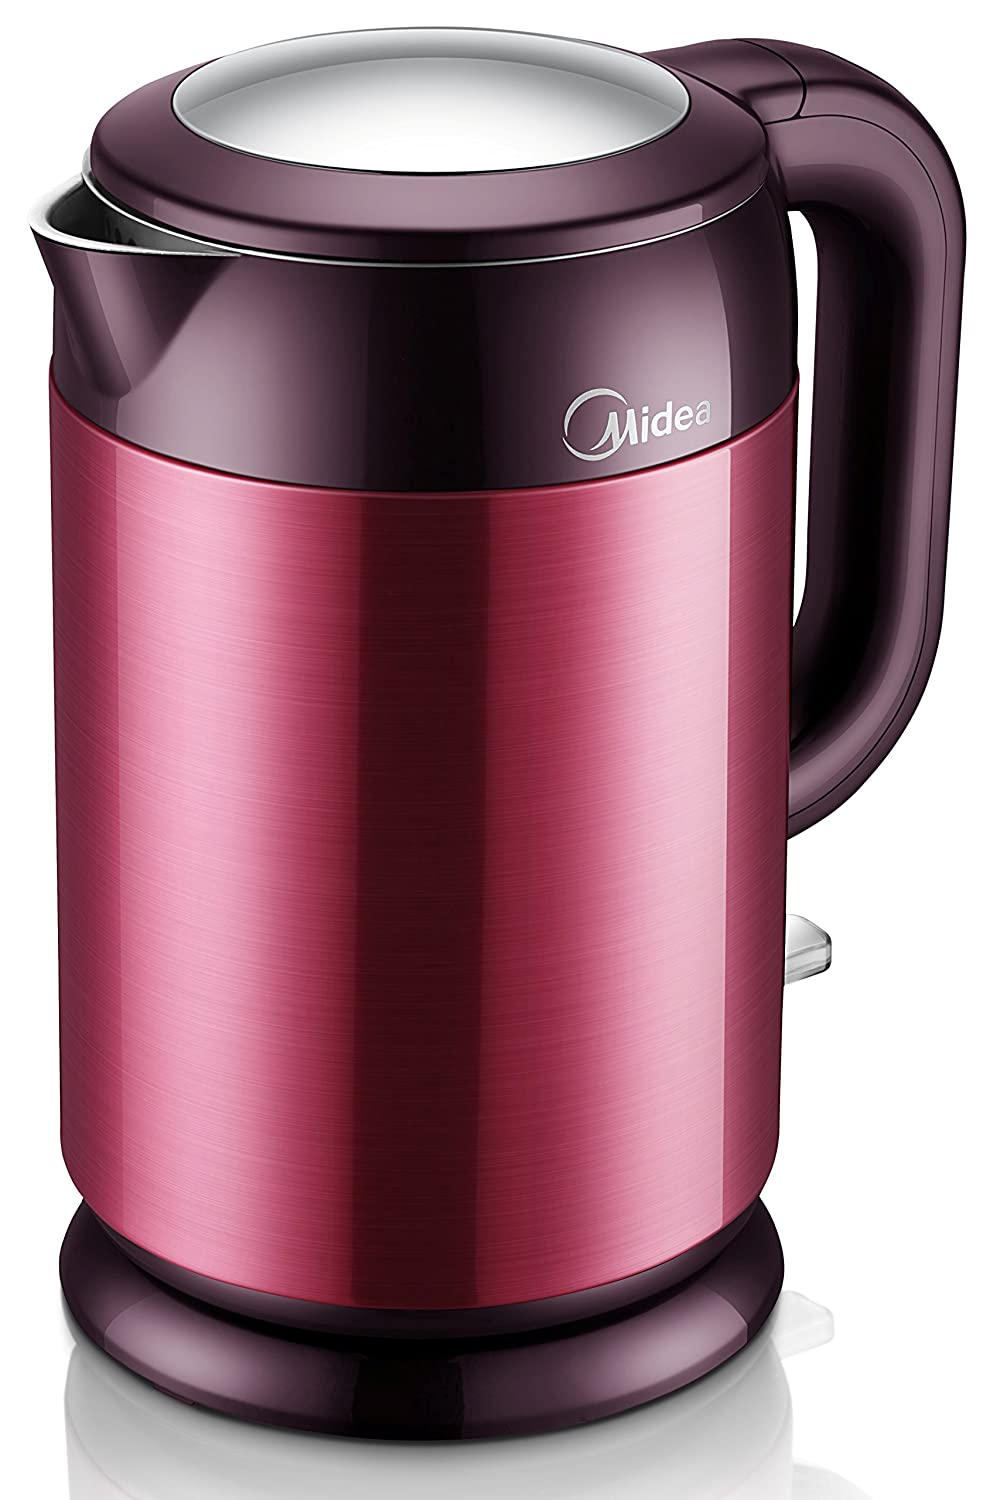 MIDEA GreenLiving 1.7 Liter (1.8 Quart) Cordless Electric Water Kettle. Stainless Steel. Double Wall Cool Touch Exterior. UL certification. Model MK-H317E1B